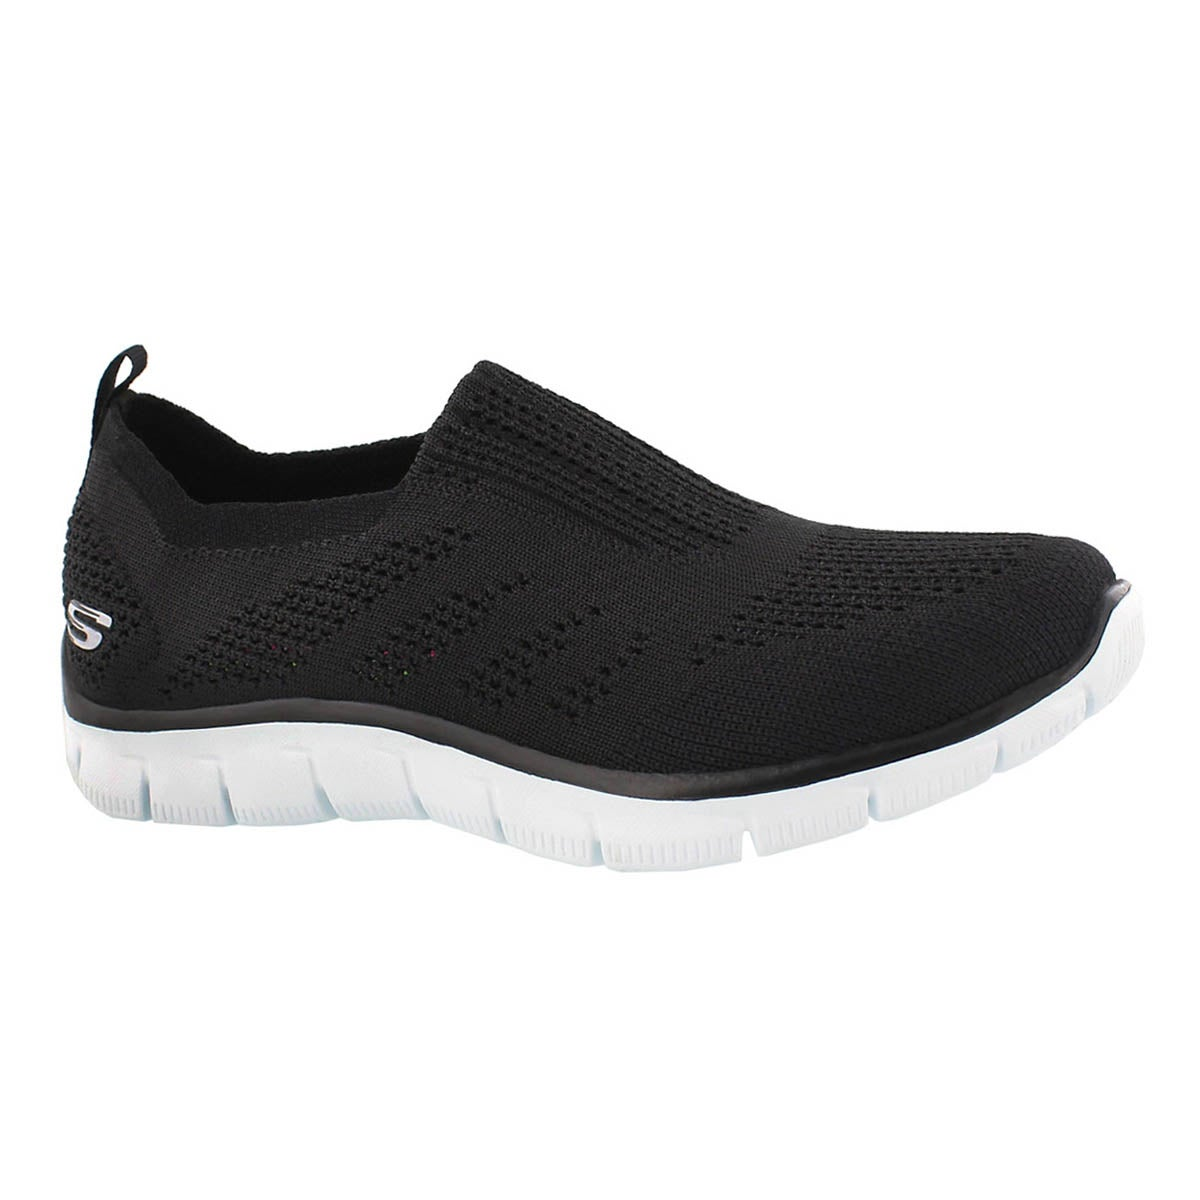 Lds Empire InsideLook bk/wt slip on shoe